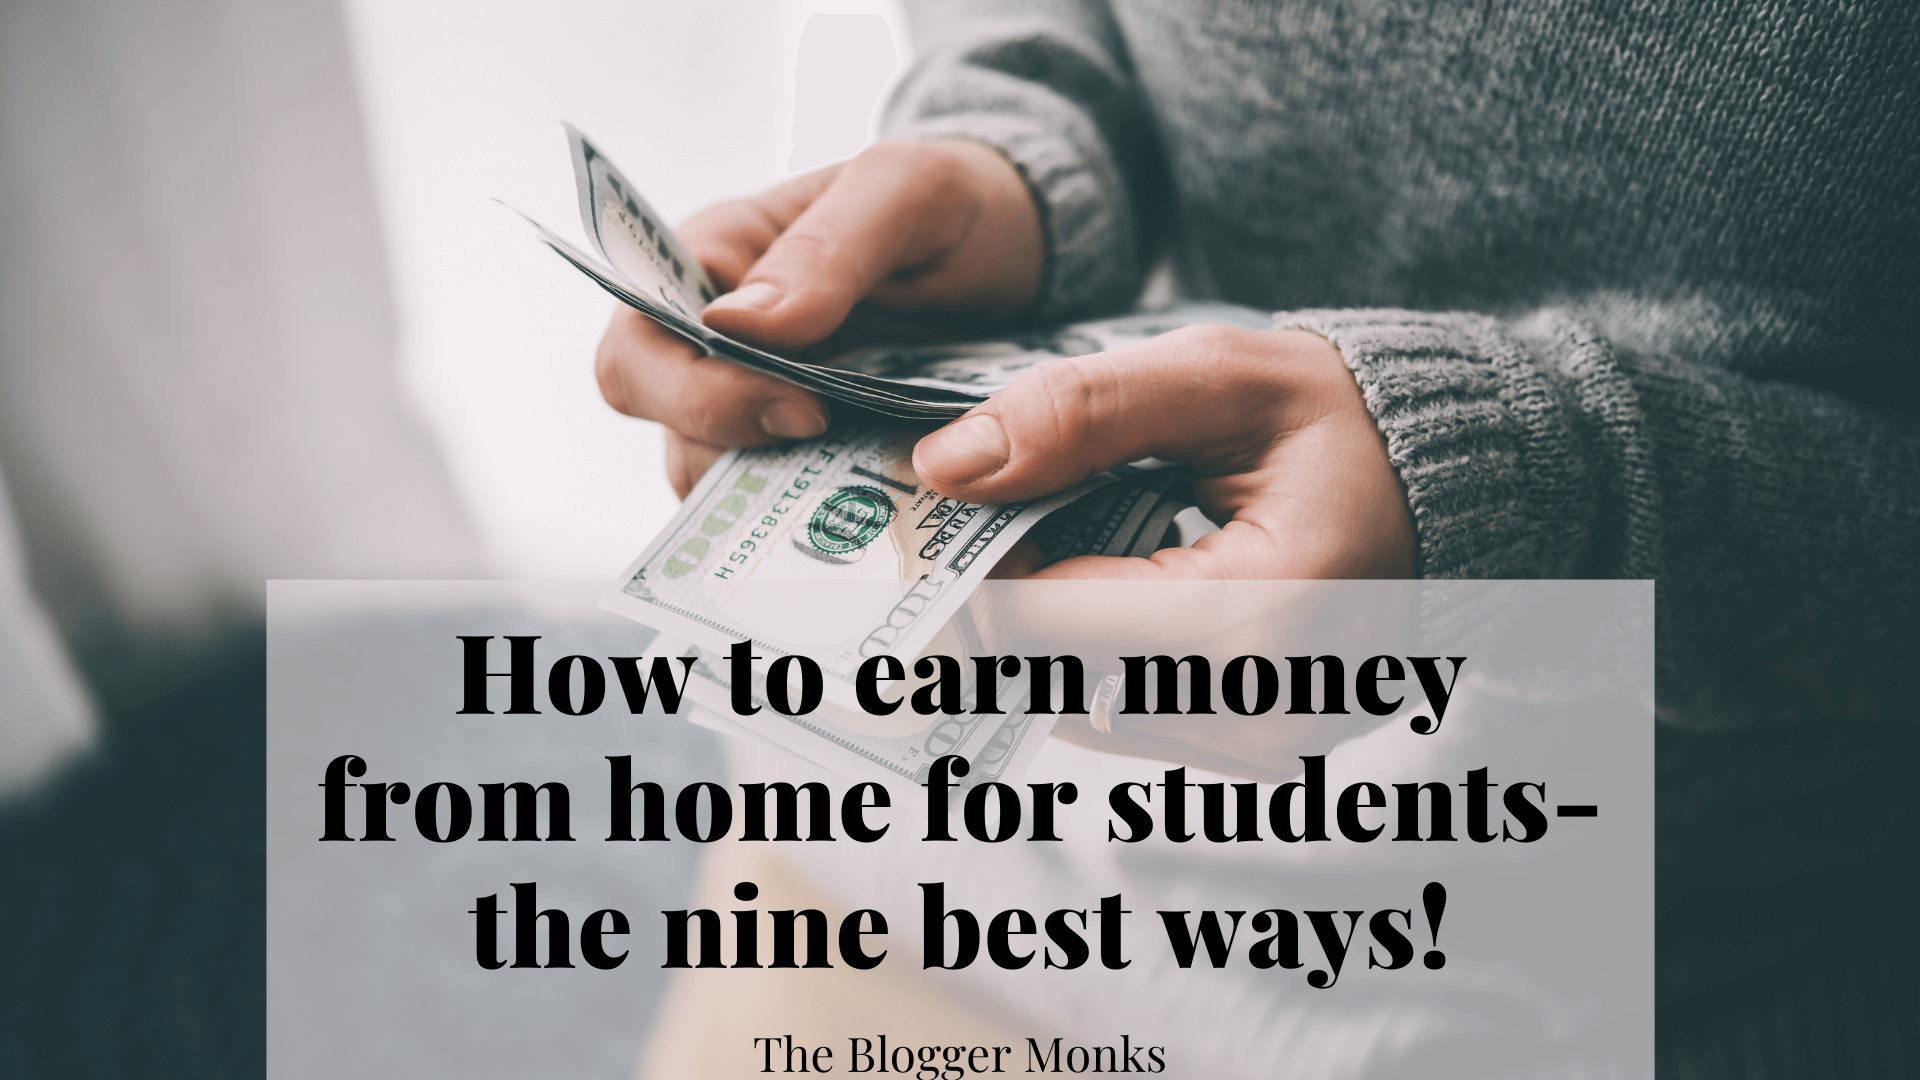 How to earn money from home for students